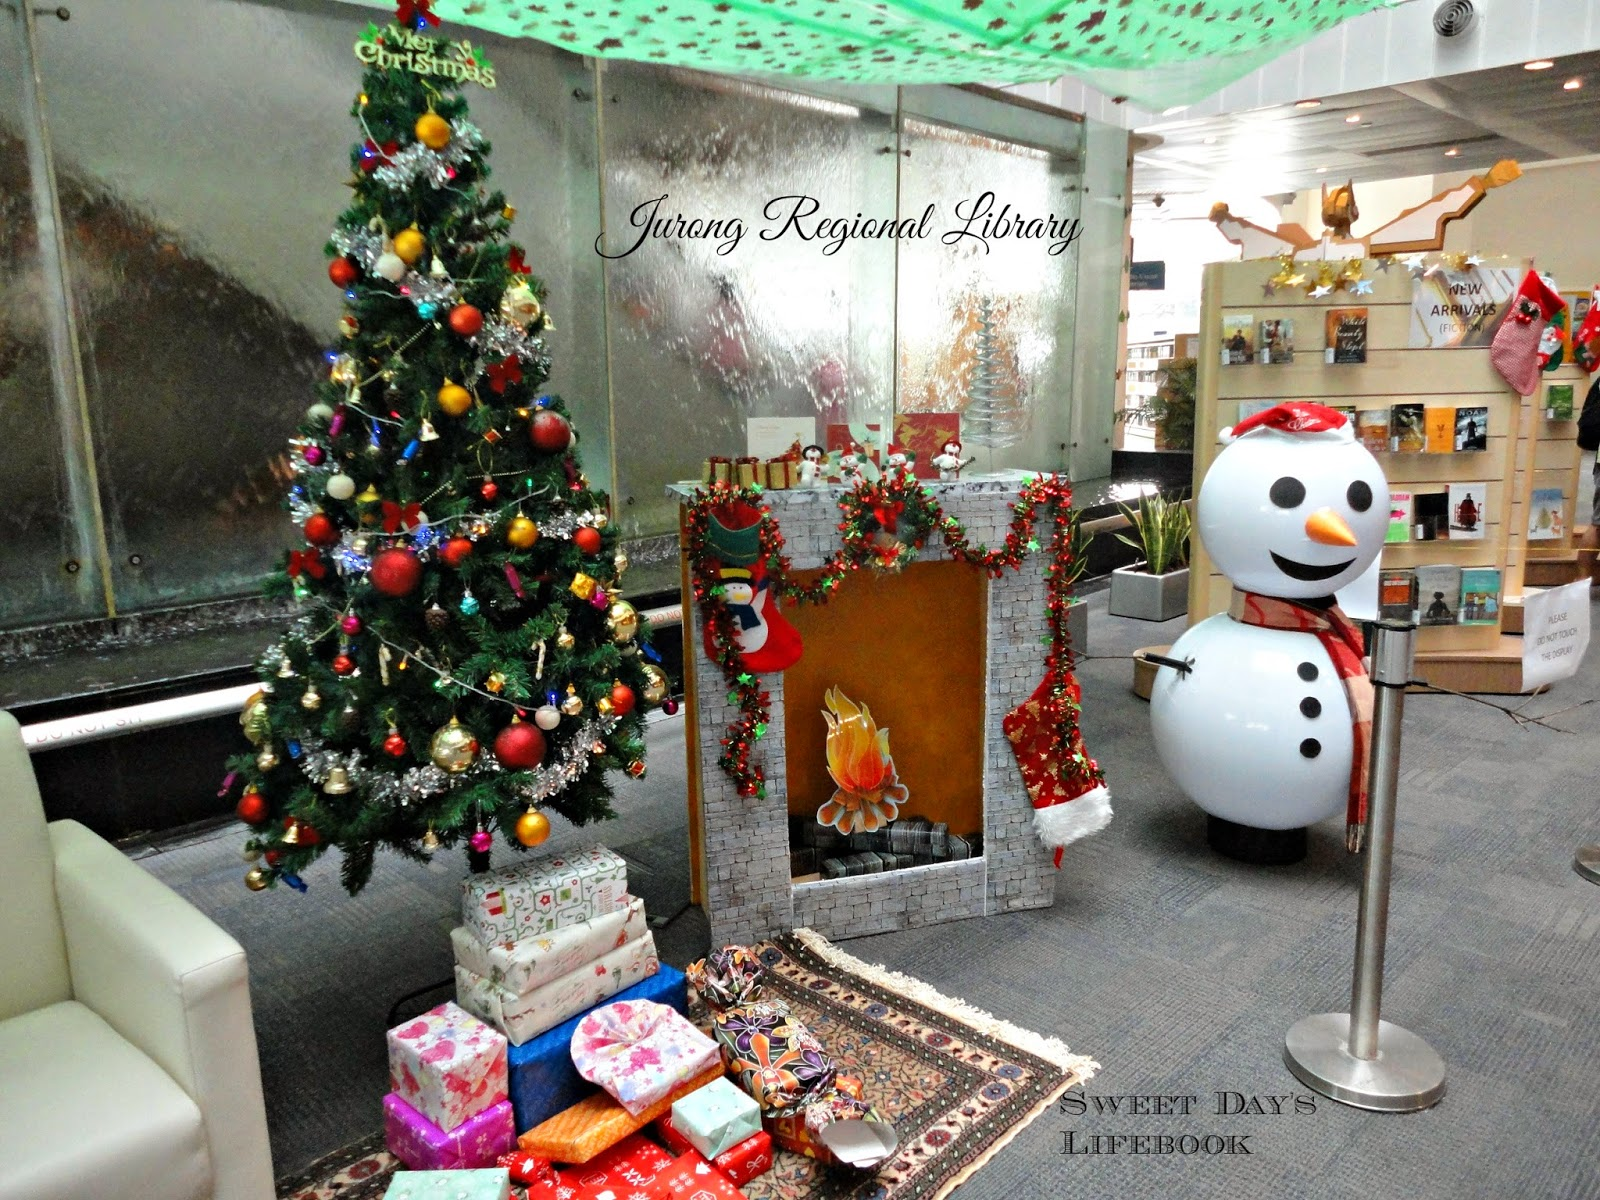 Sweet Day's Lifebook: Christmas decorations at the libraries - photo#48